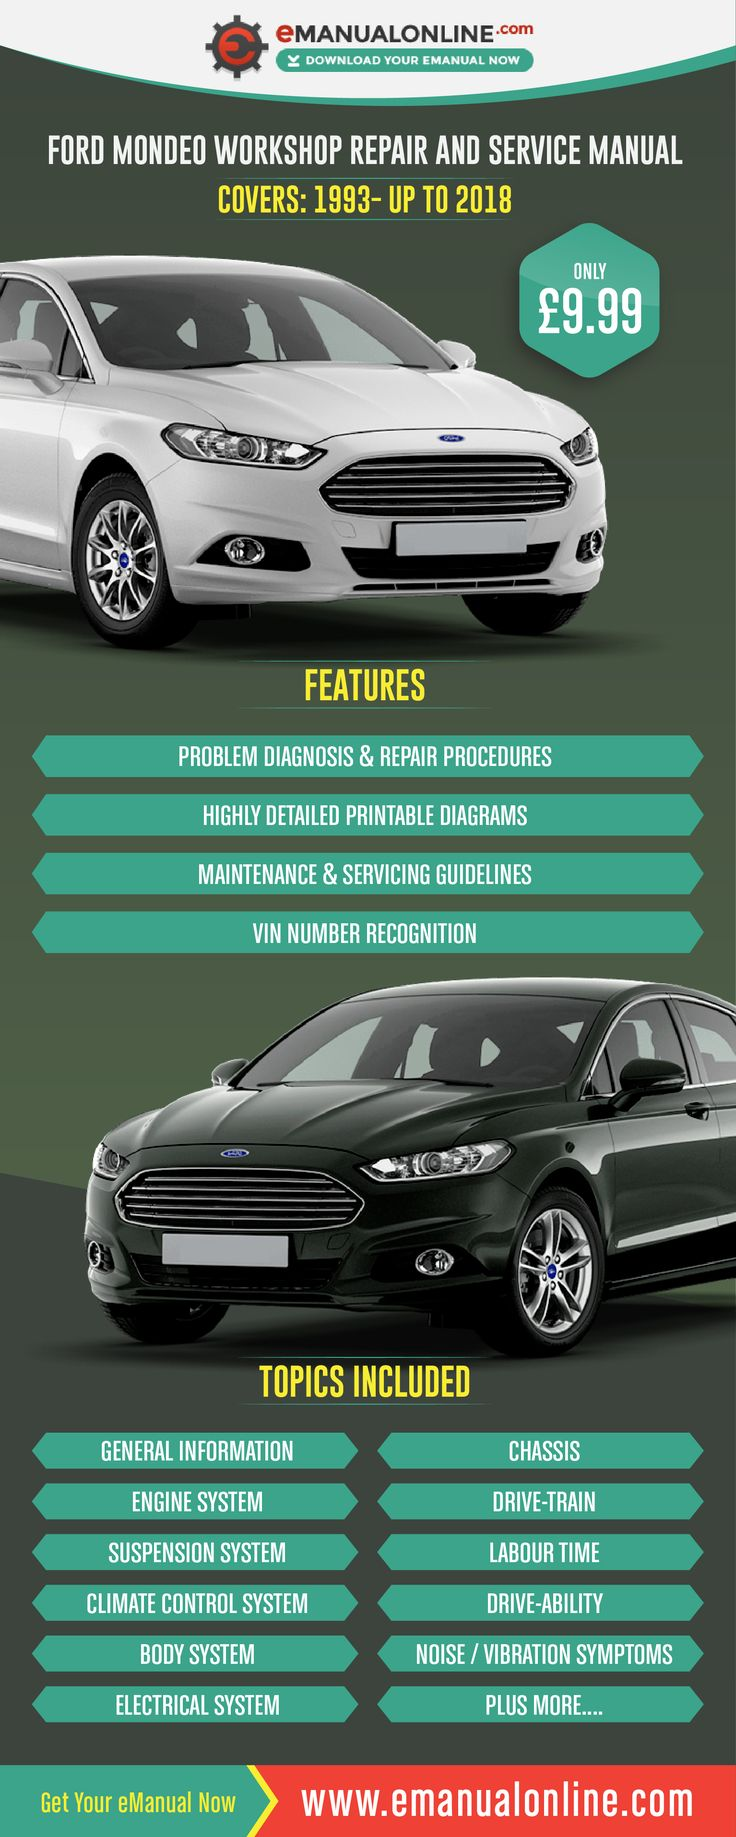 The 35 best top 35 cars manual images on pinterest business ford mondeo workshop repair and service manual this workshop manual contains comprehensive data on repair procedures fandeluxe Images